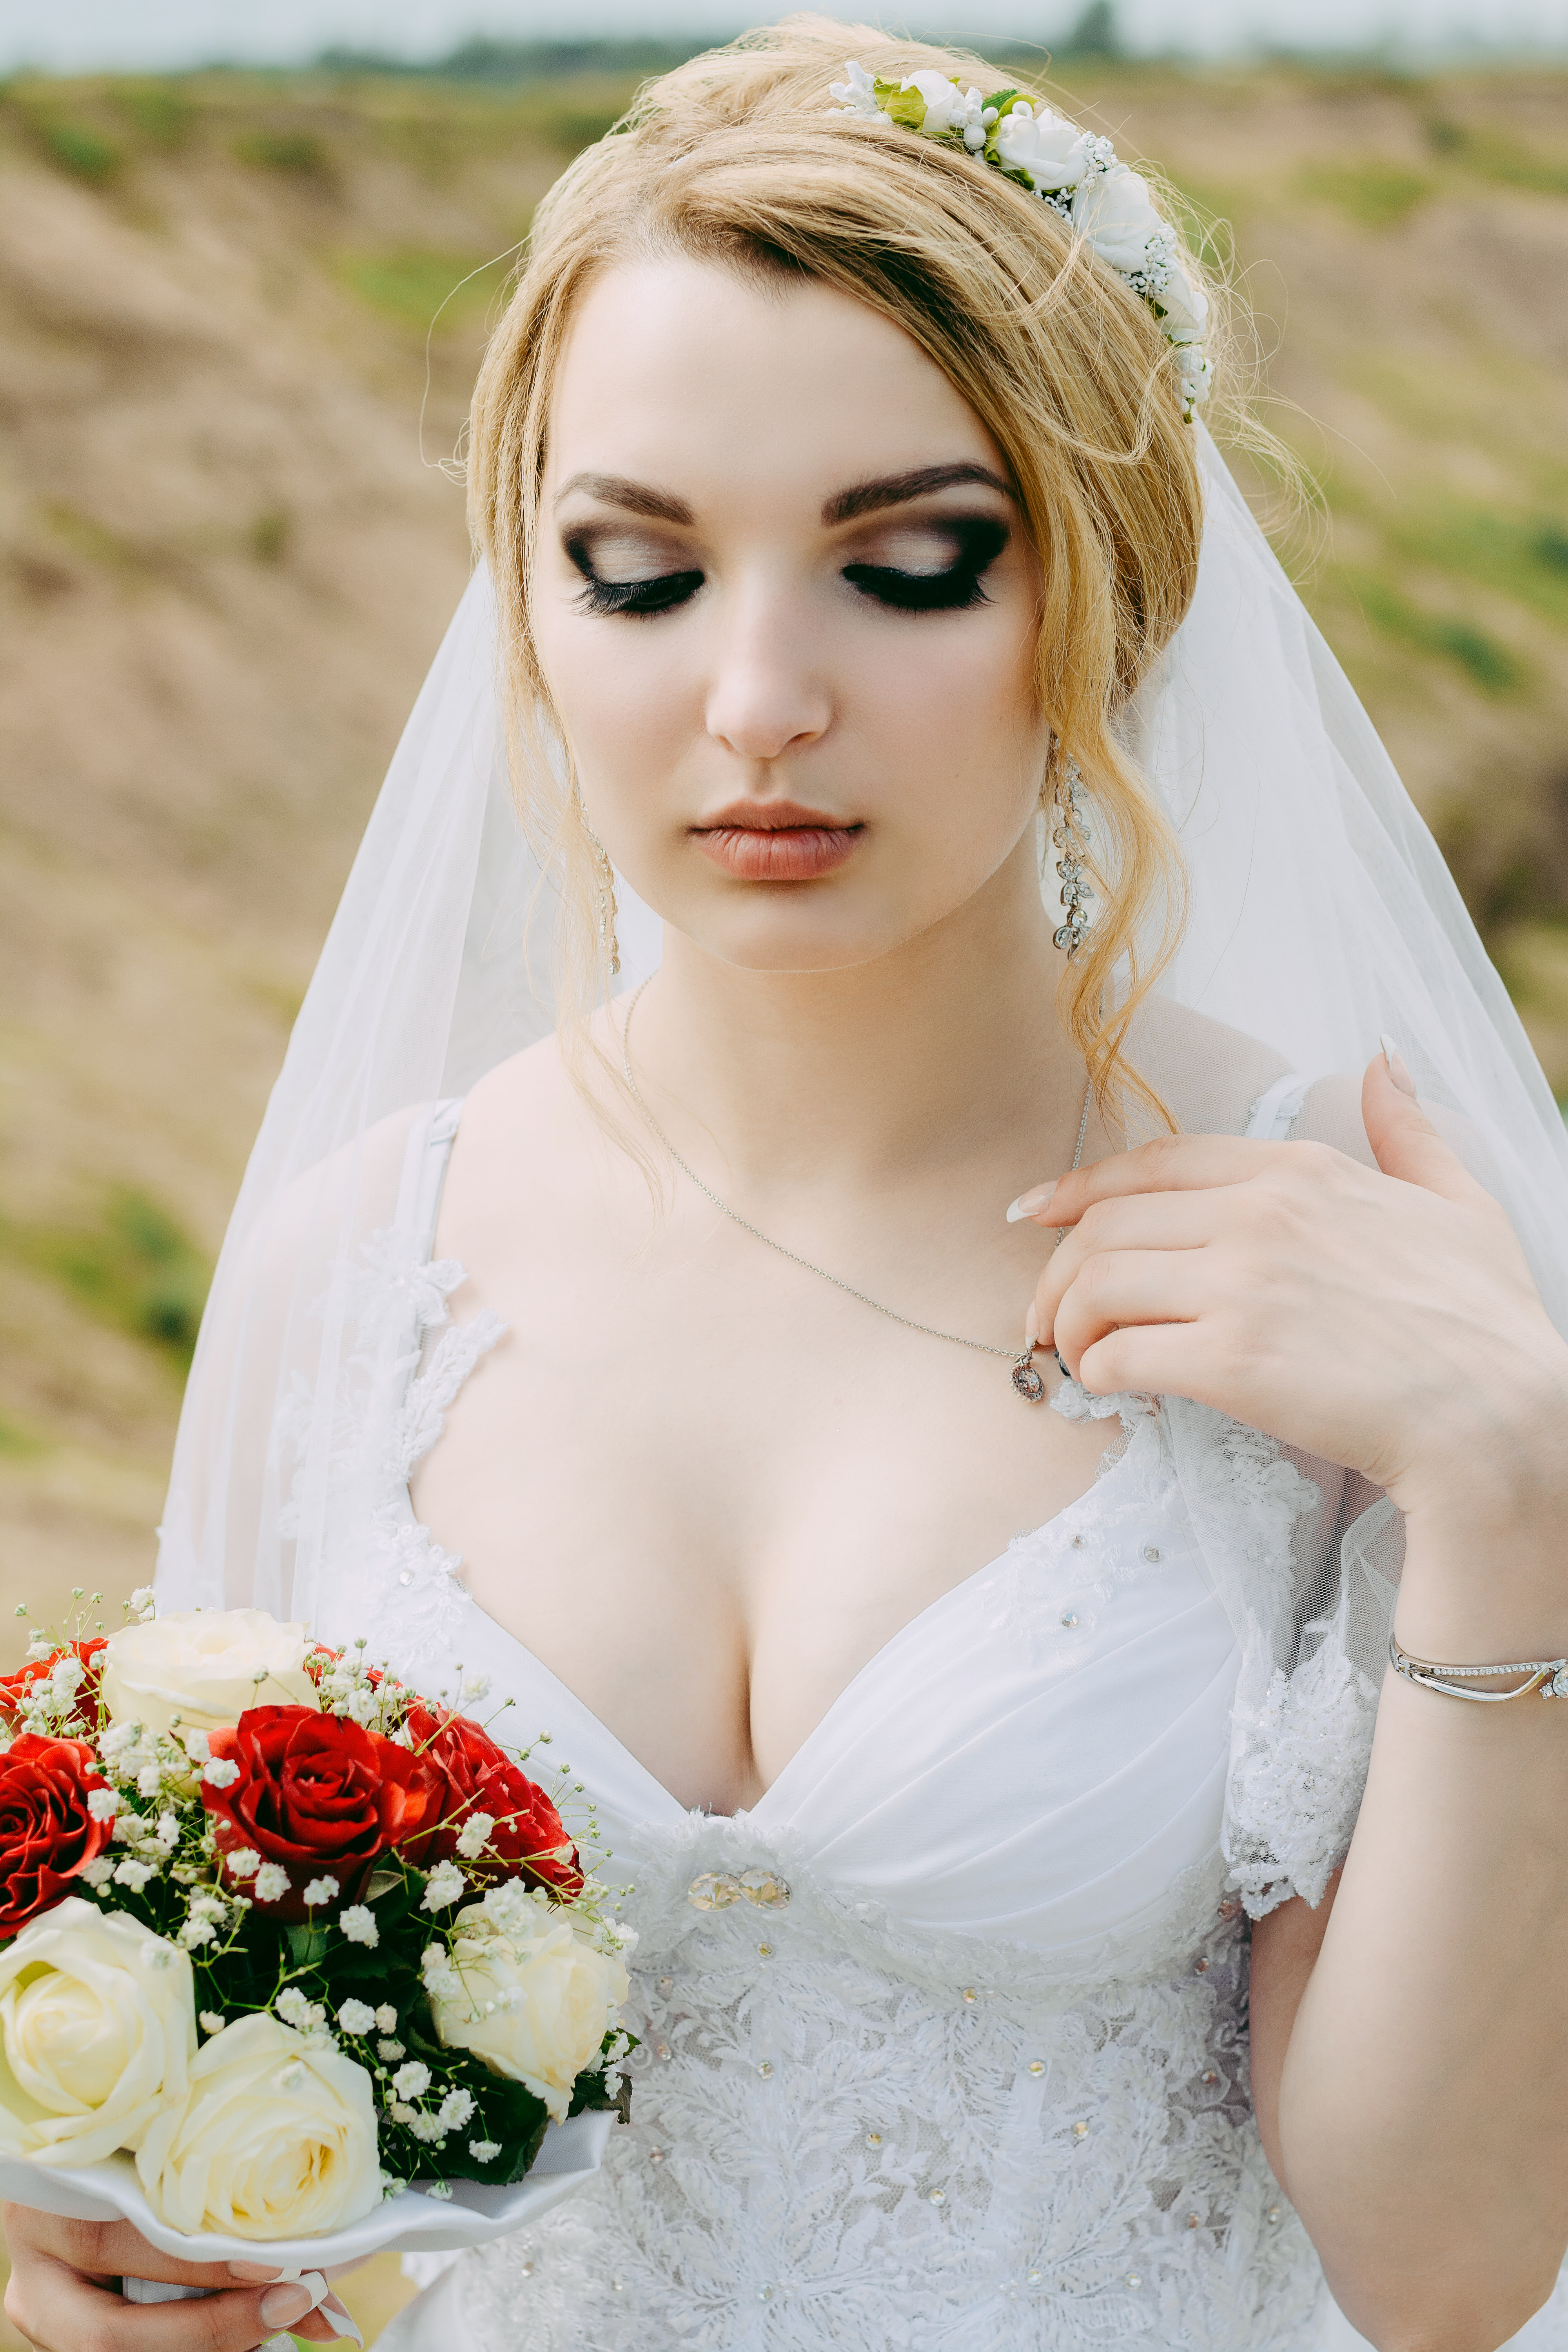 woman wearing wedding gown holding bouquet